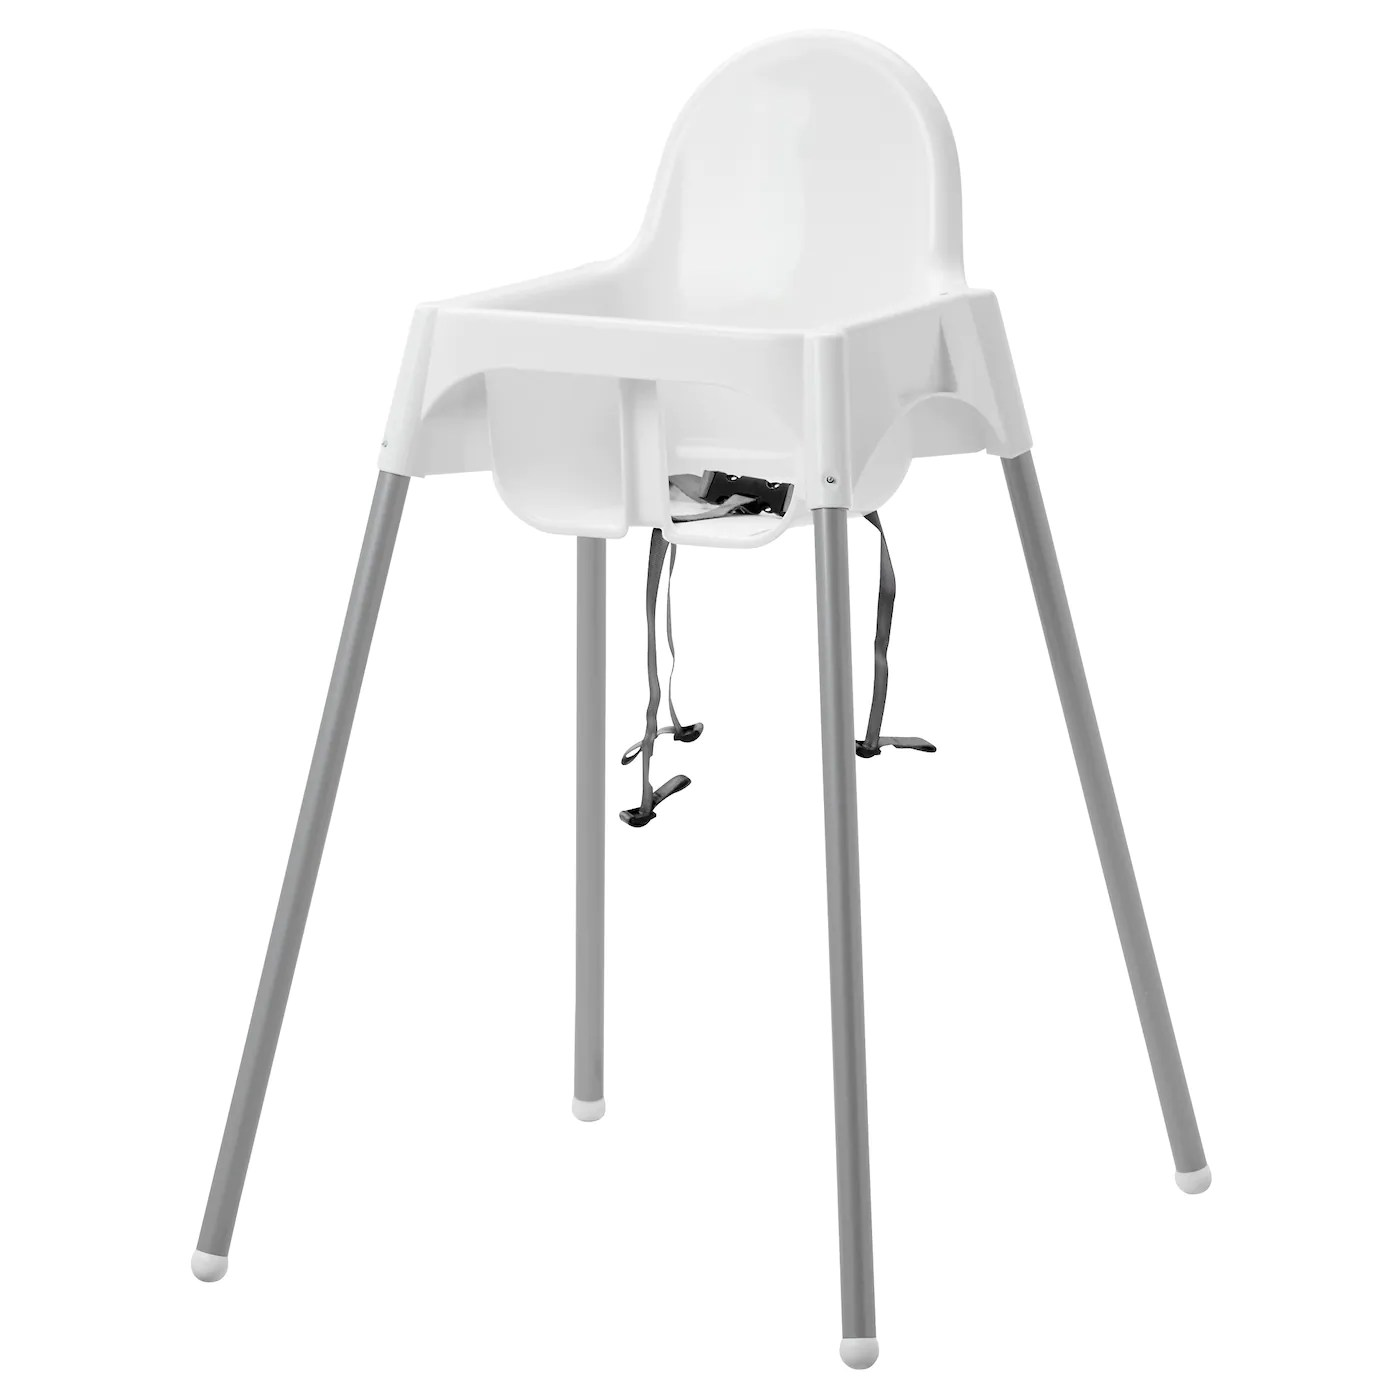 antilop high chair brookstone zero gravity highchair with safety belt white silver colour ikea